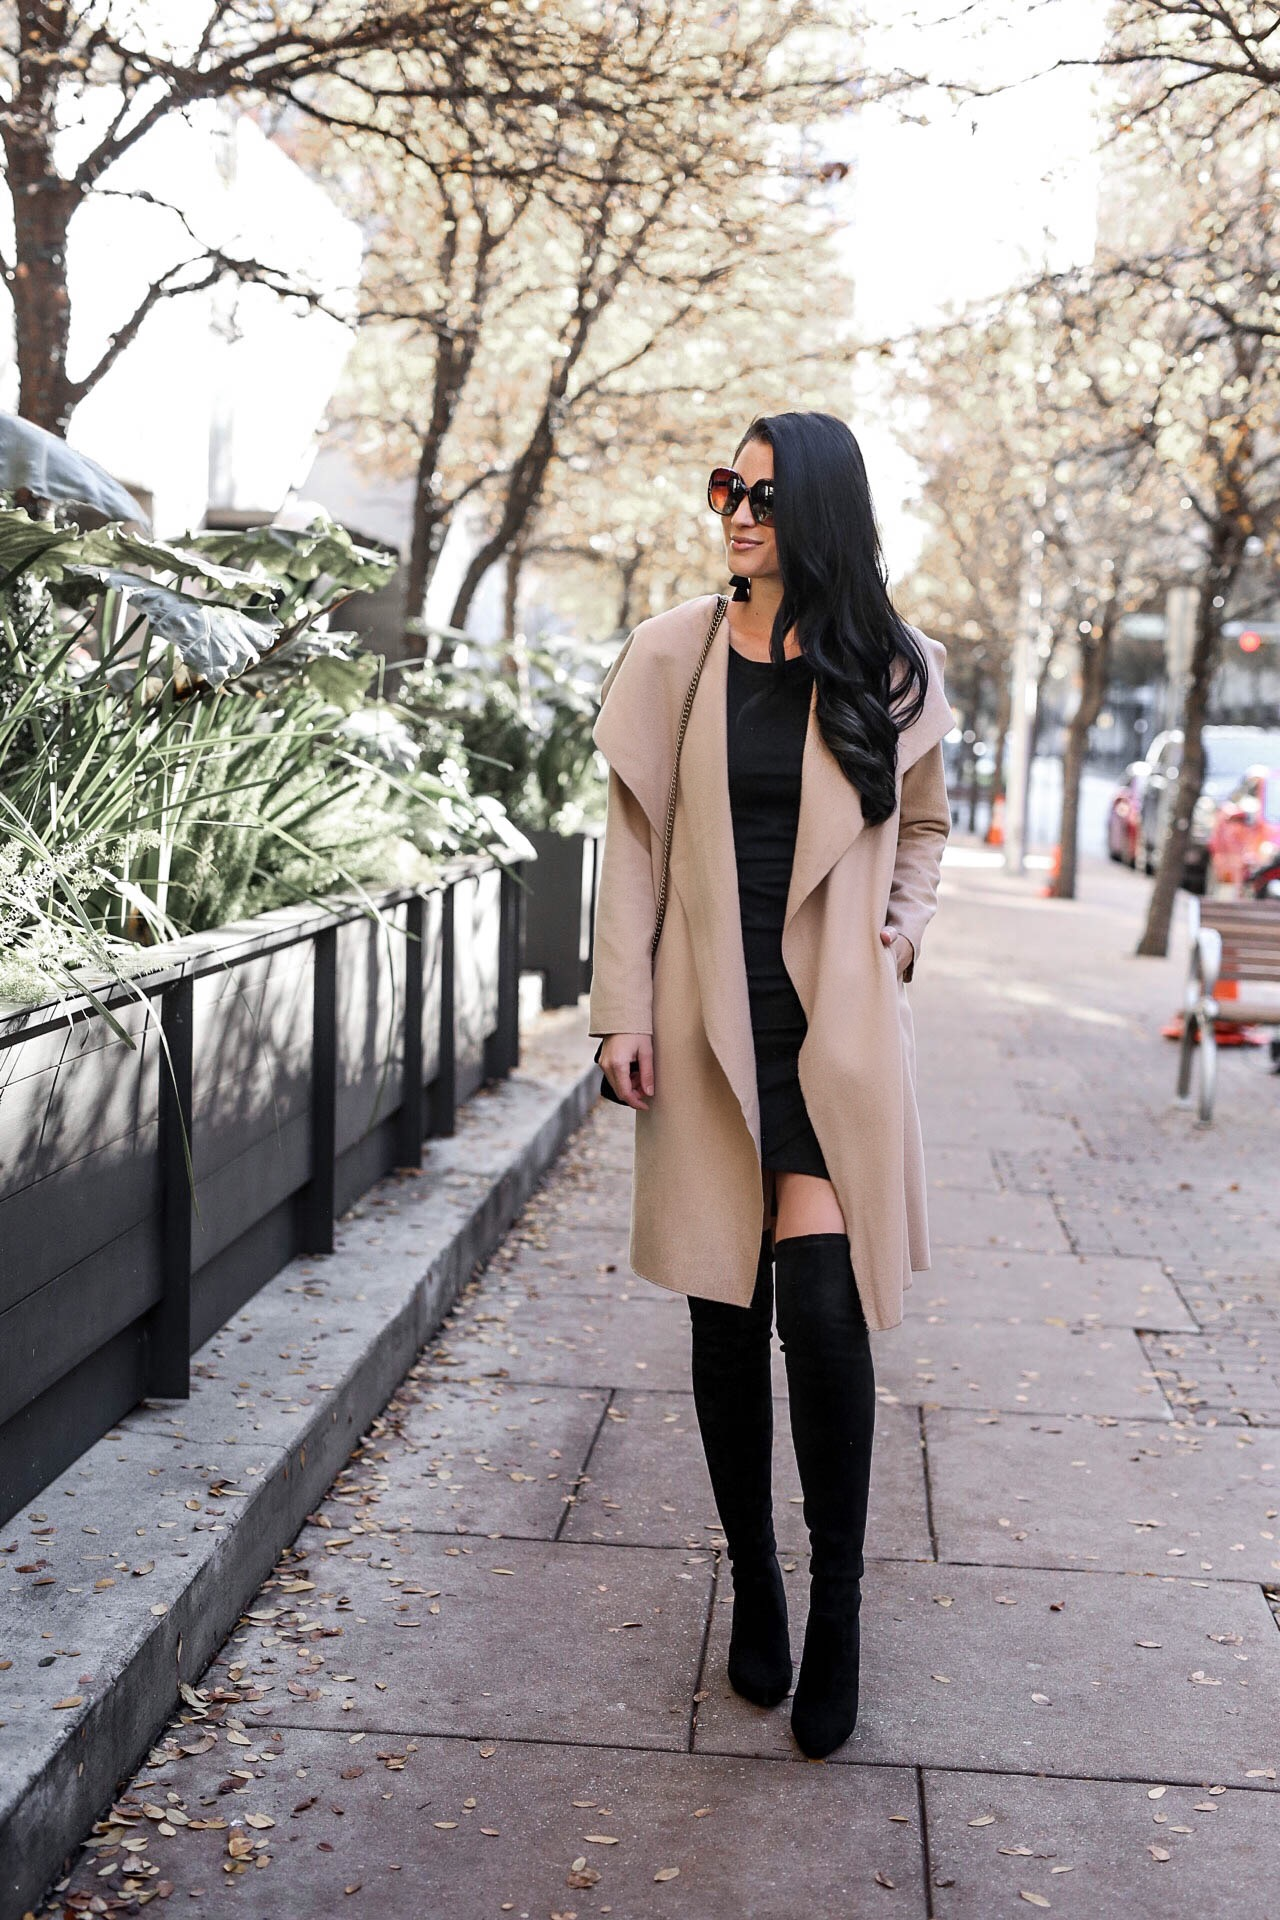 DTKAustin shares her top affordable coats from Chicwish that are under $100. Handbag from Henri Bendel, OTK boots from Goodnight Macaroon. | winter coats for women | how to style winter coats | affordable winter coats | winter style tips | winter fashion tips || Dressed to Kill #wintercoats #affordablewinterfashion #winterfashion - 10 Must-Have Classic Affordable Coats for Winter by Austin fashion blogger Dressed to Kill